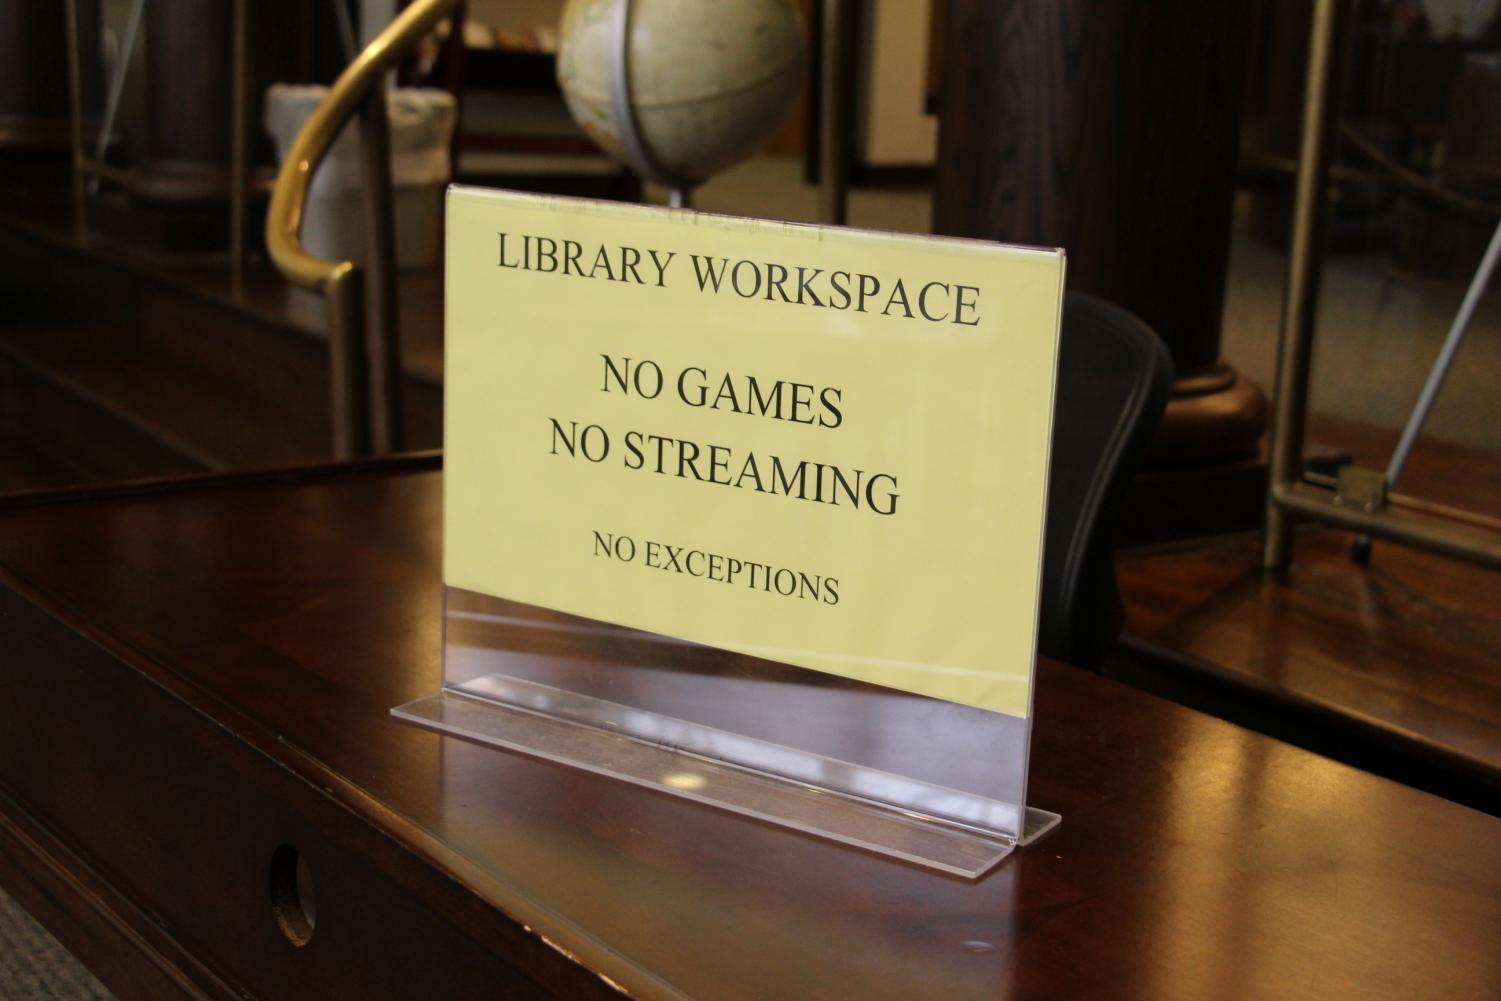 A sign in the library. Netflix is blocked from 8:30 am to 3:30 pm on weekdays.